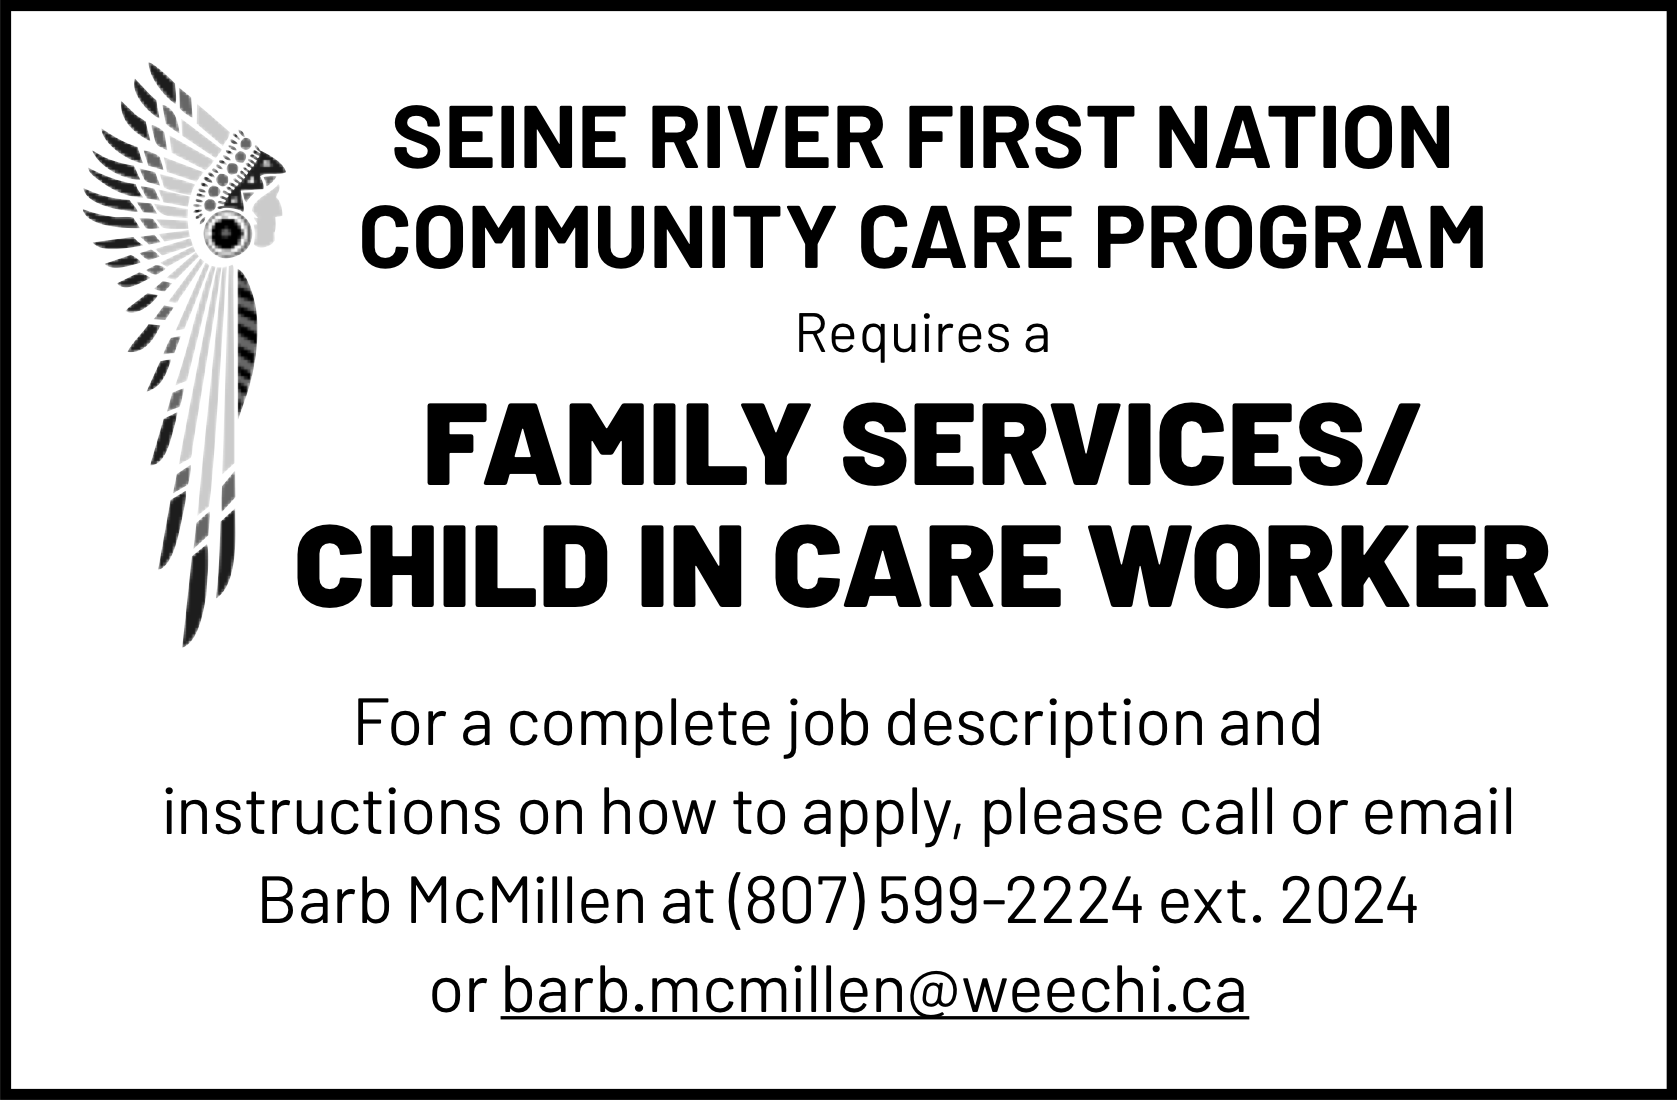 Family Services/Child in Care Worker